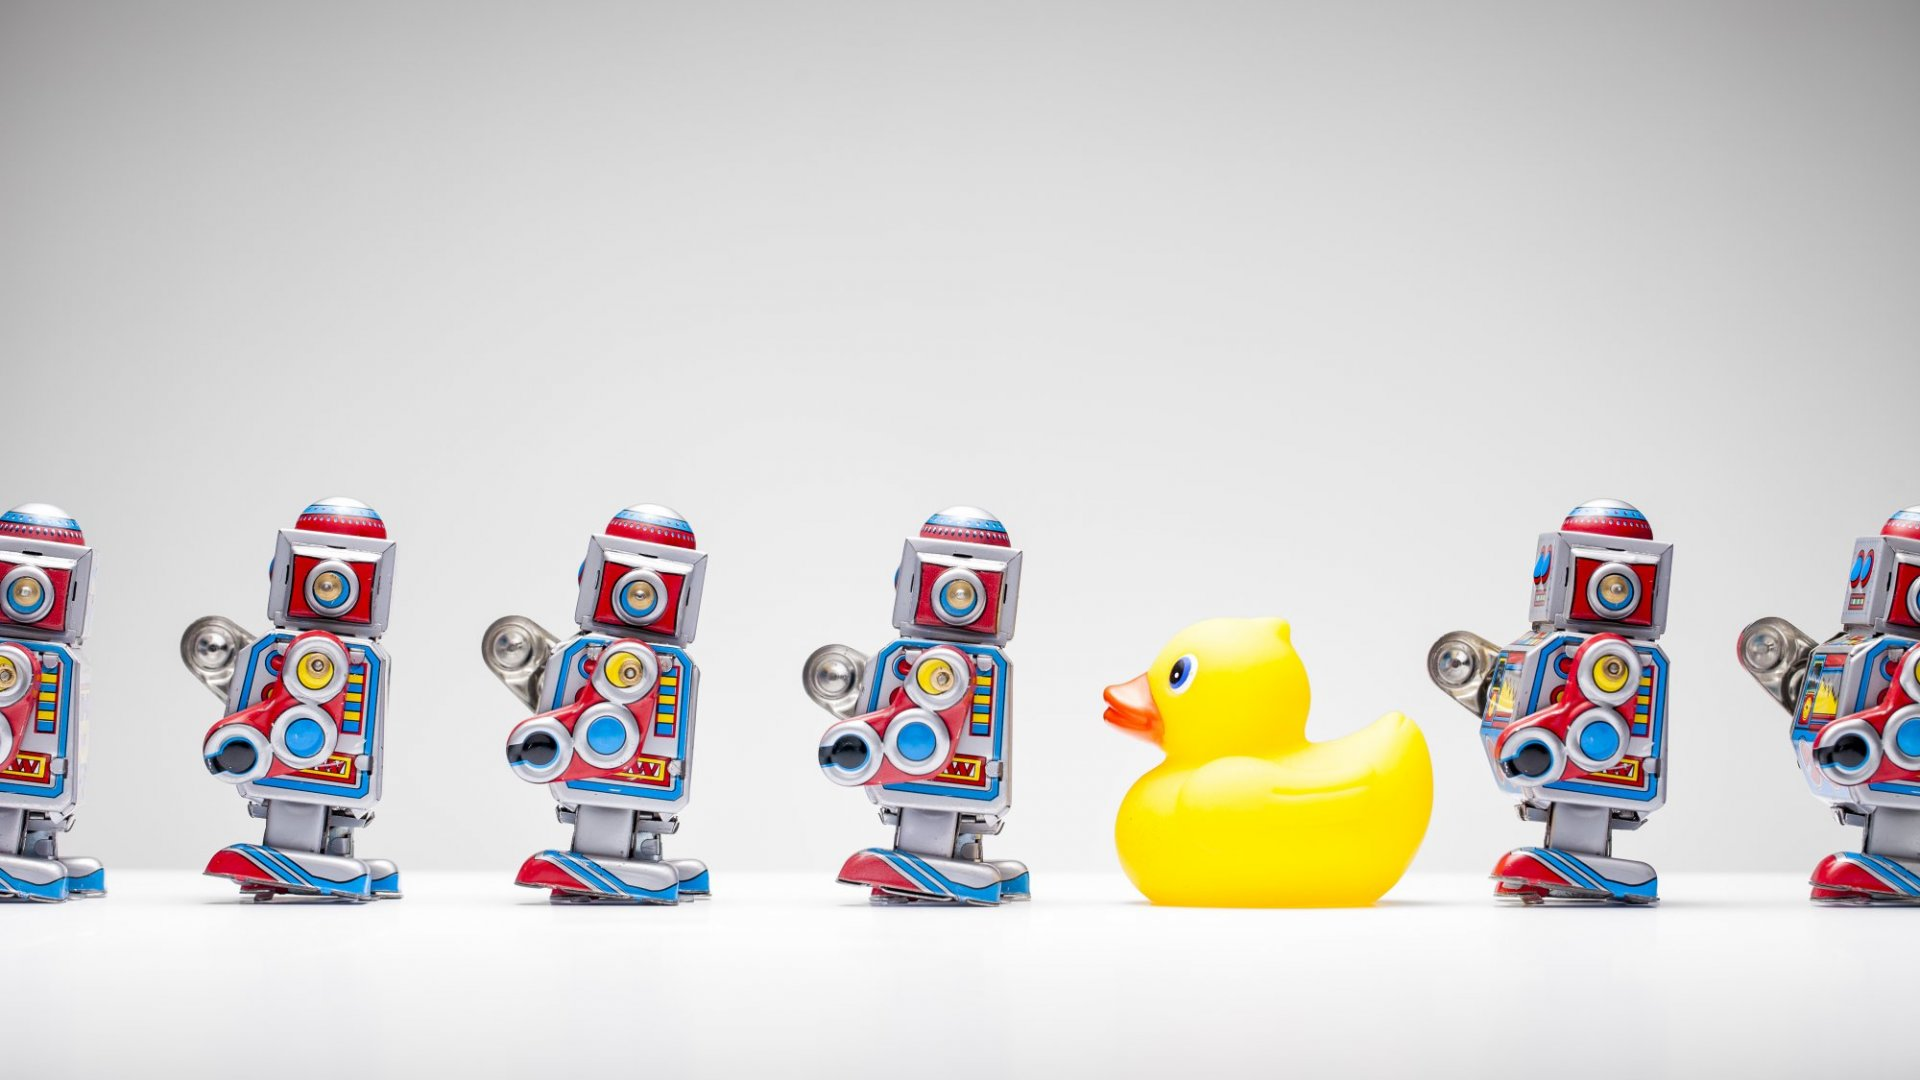 In a world going towards automation, standing out from the crowd could be your game changer.